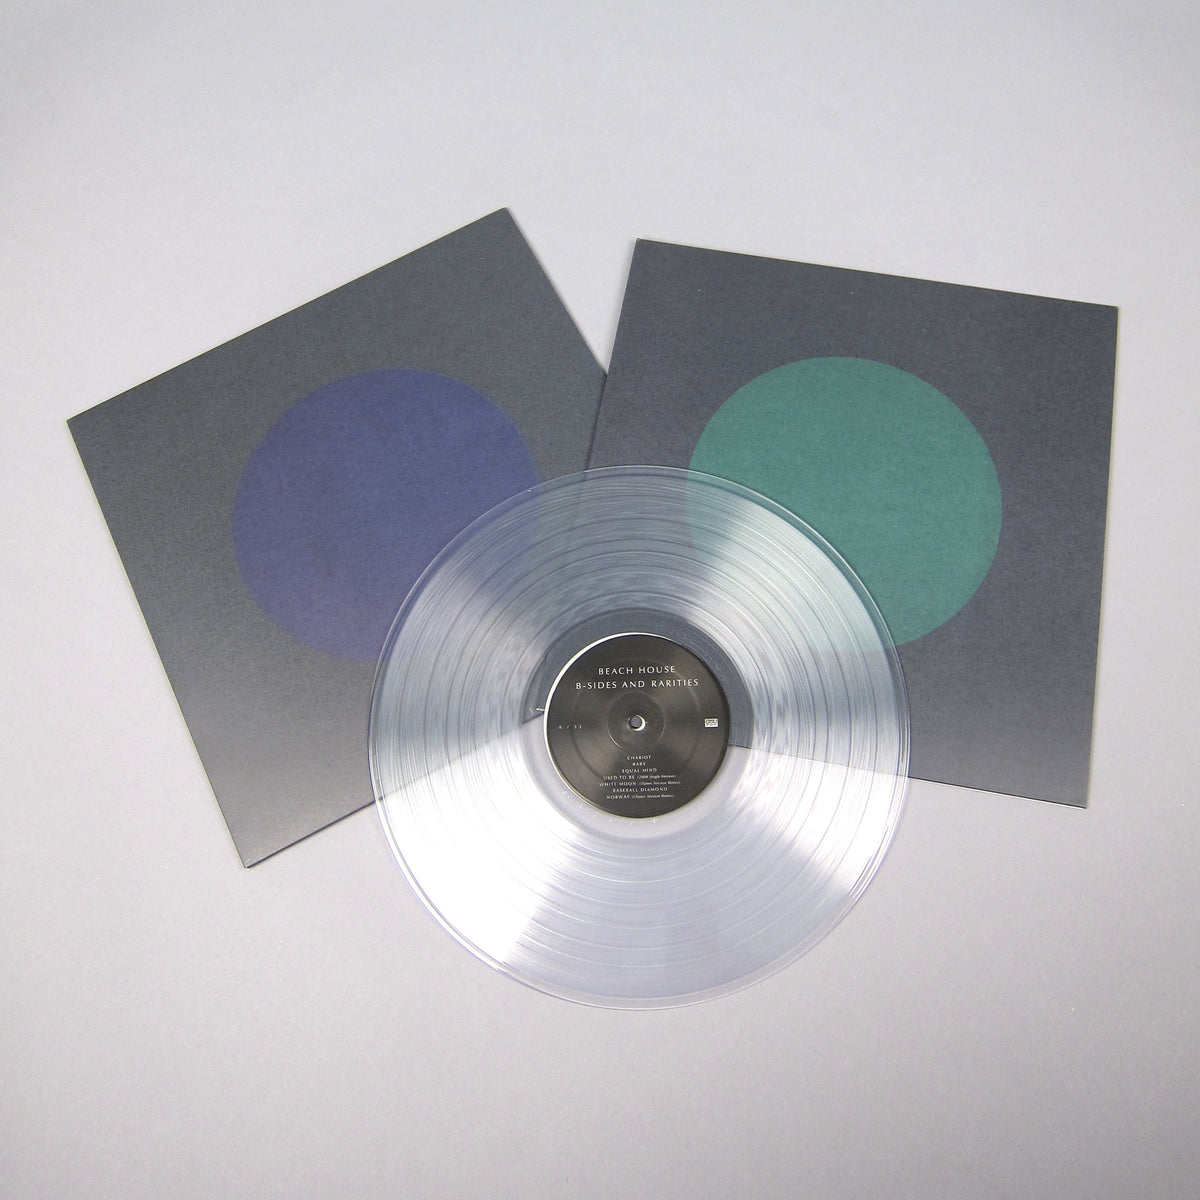 Beach House: B-Sides And Rarities (Loser Edition Colored Vinyl) Vinyl LP